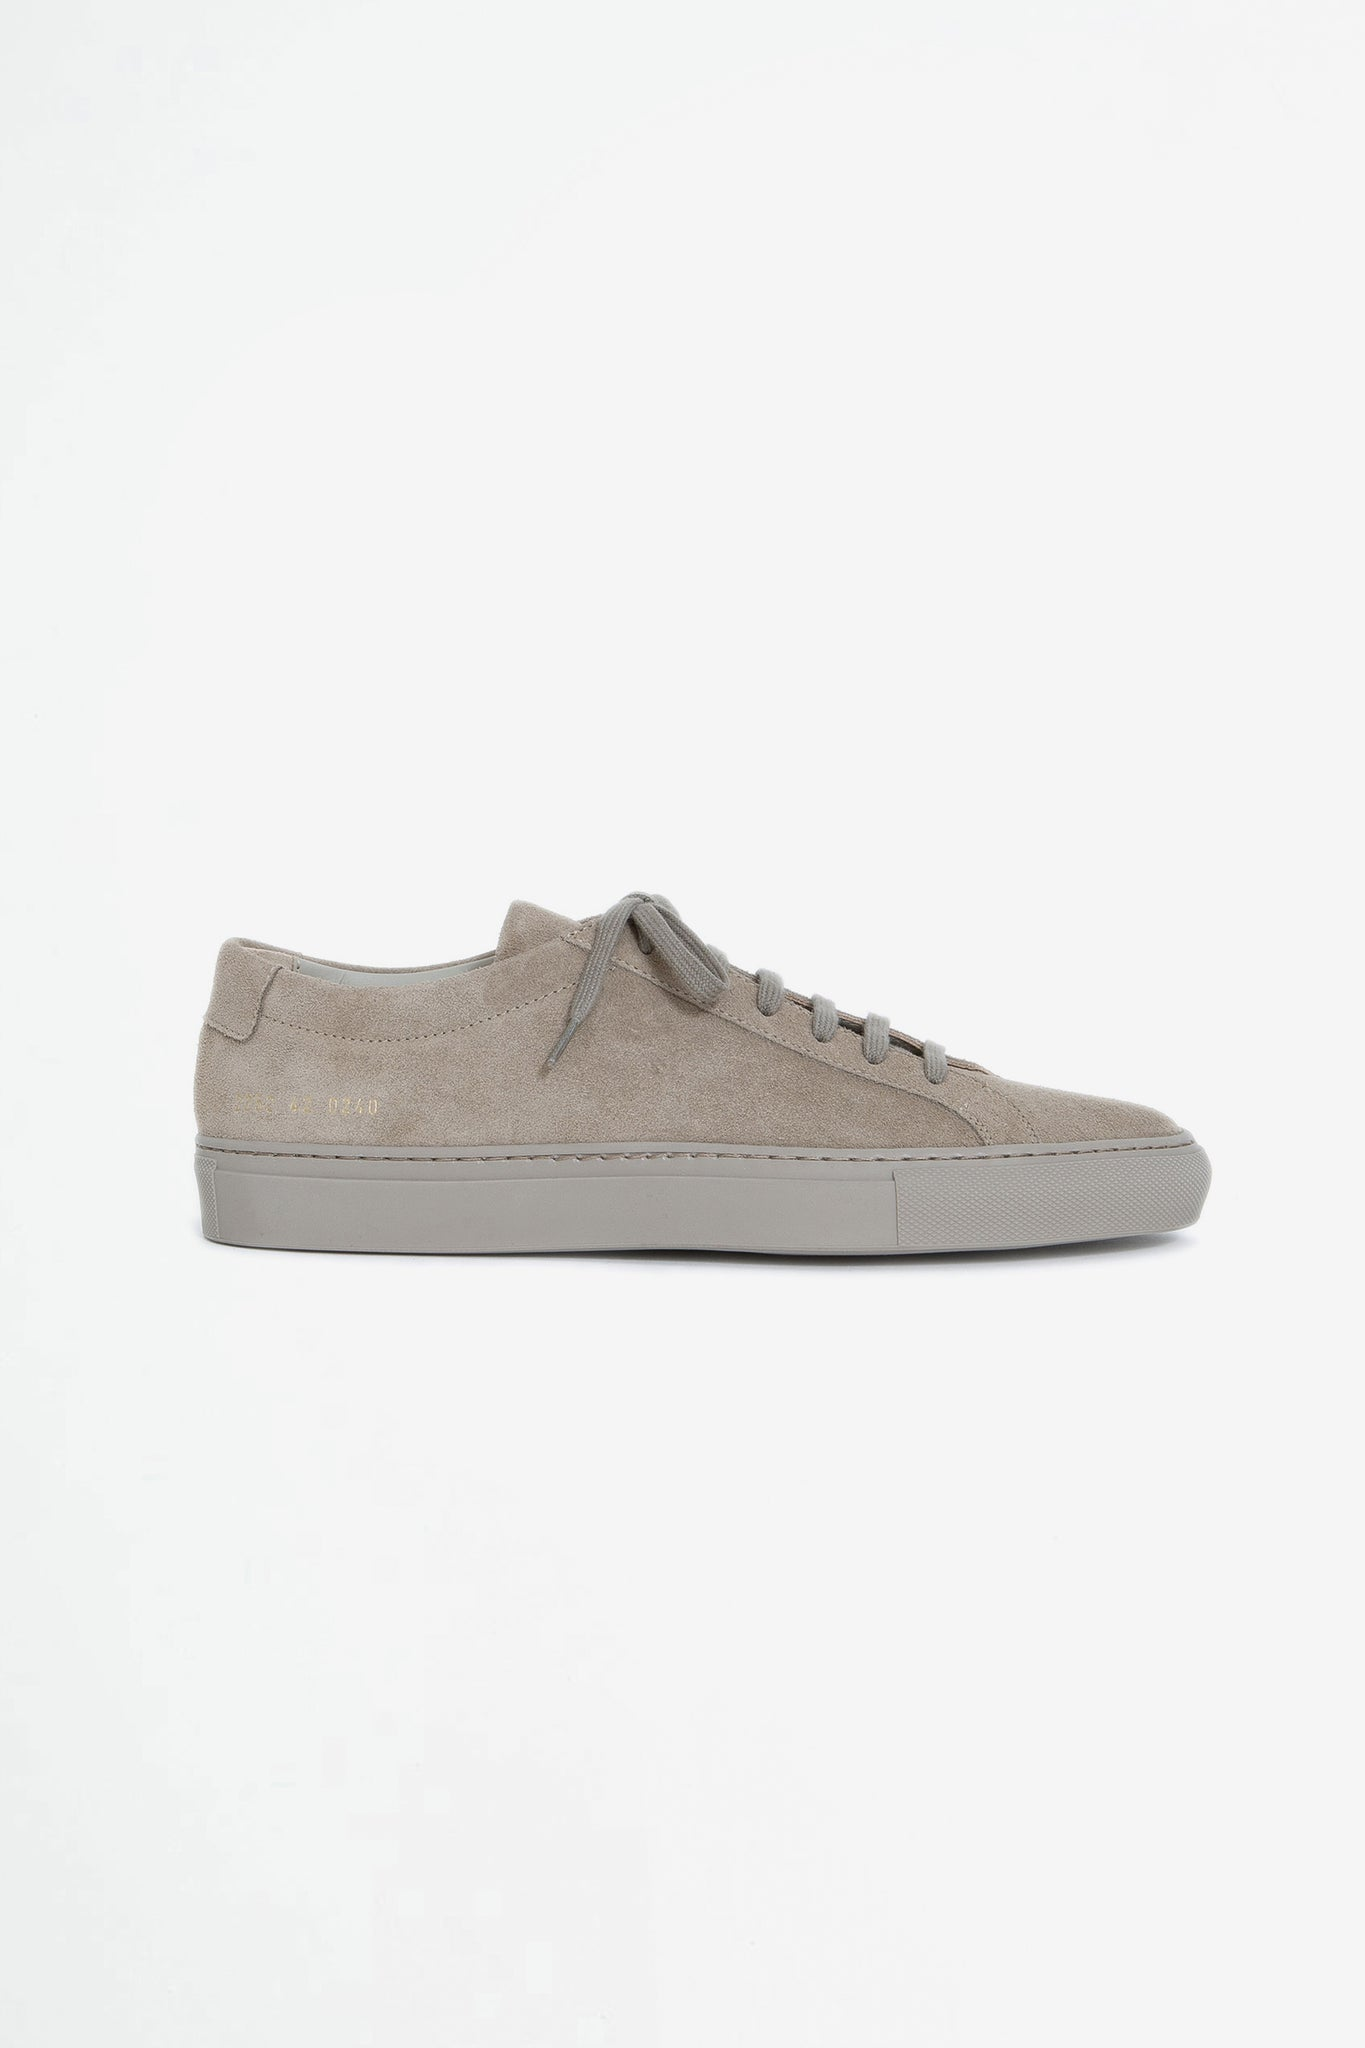 Original Achilles low suede taupe